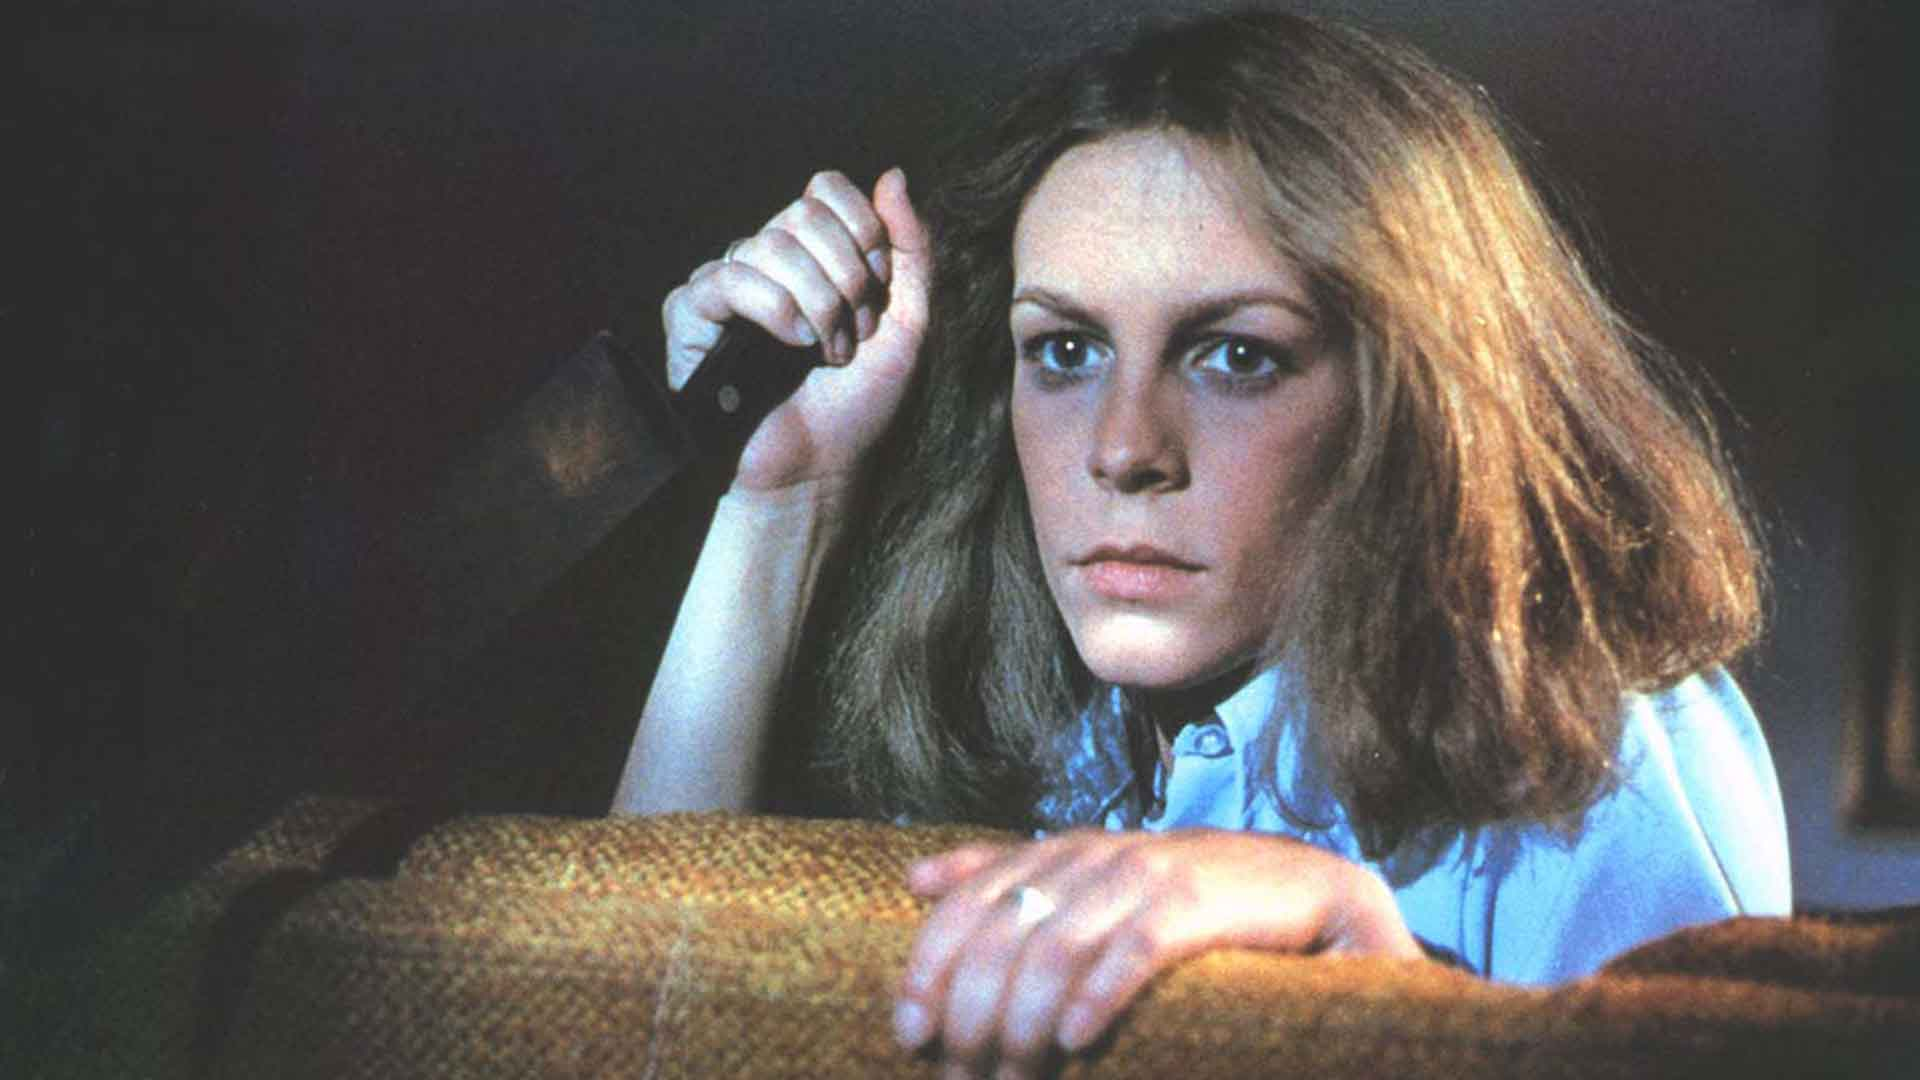 Jimmy Lee Curtis with a knife in the movie Halloween